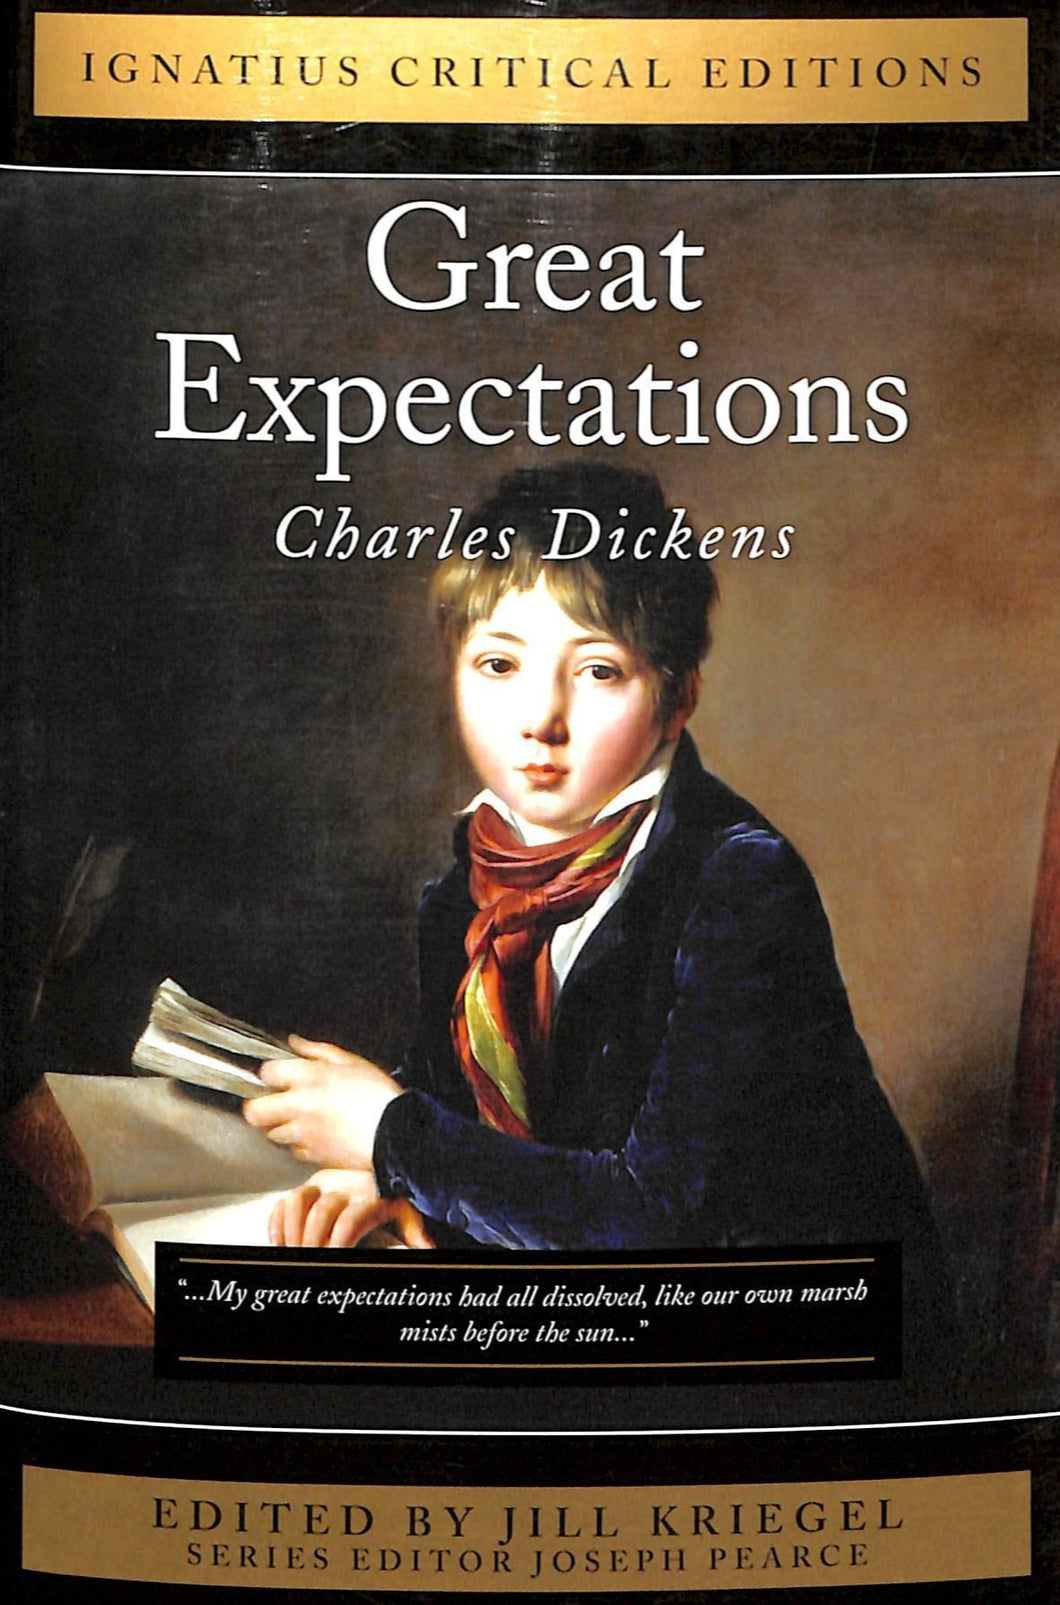 Great Expectations: Ignatius Critical Edition